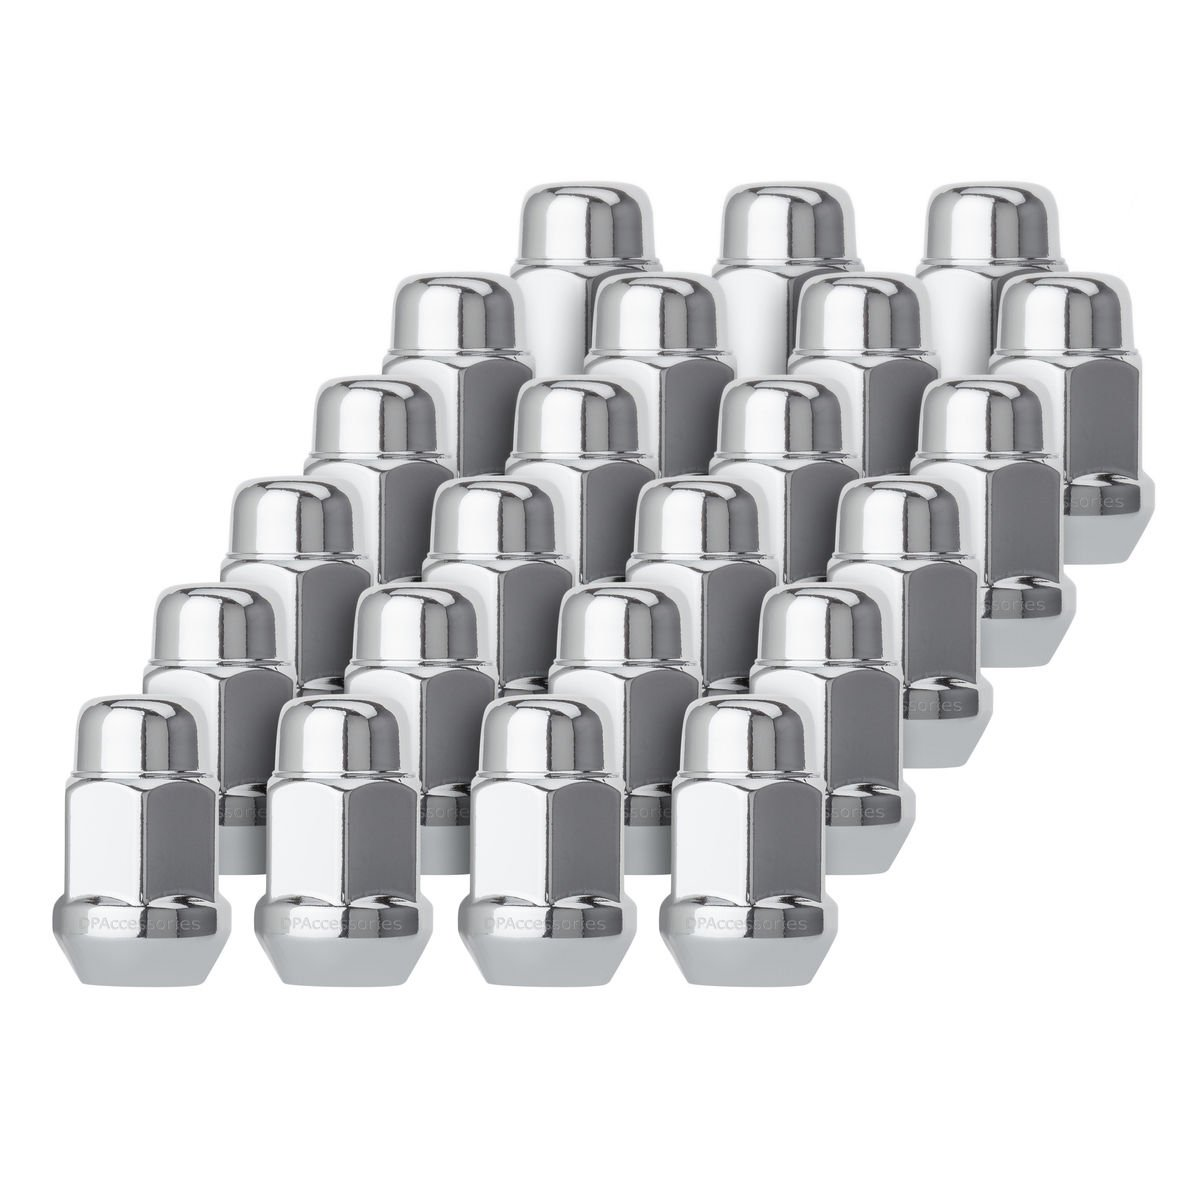 "DPAccessories D3112-HT-2305/20 20 Chrome 1/2-20 Closed End Bulge Acorn Lug Nuts - Cone Seat - 3/4"" Hex Wheel Lug Nut"